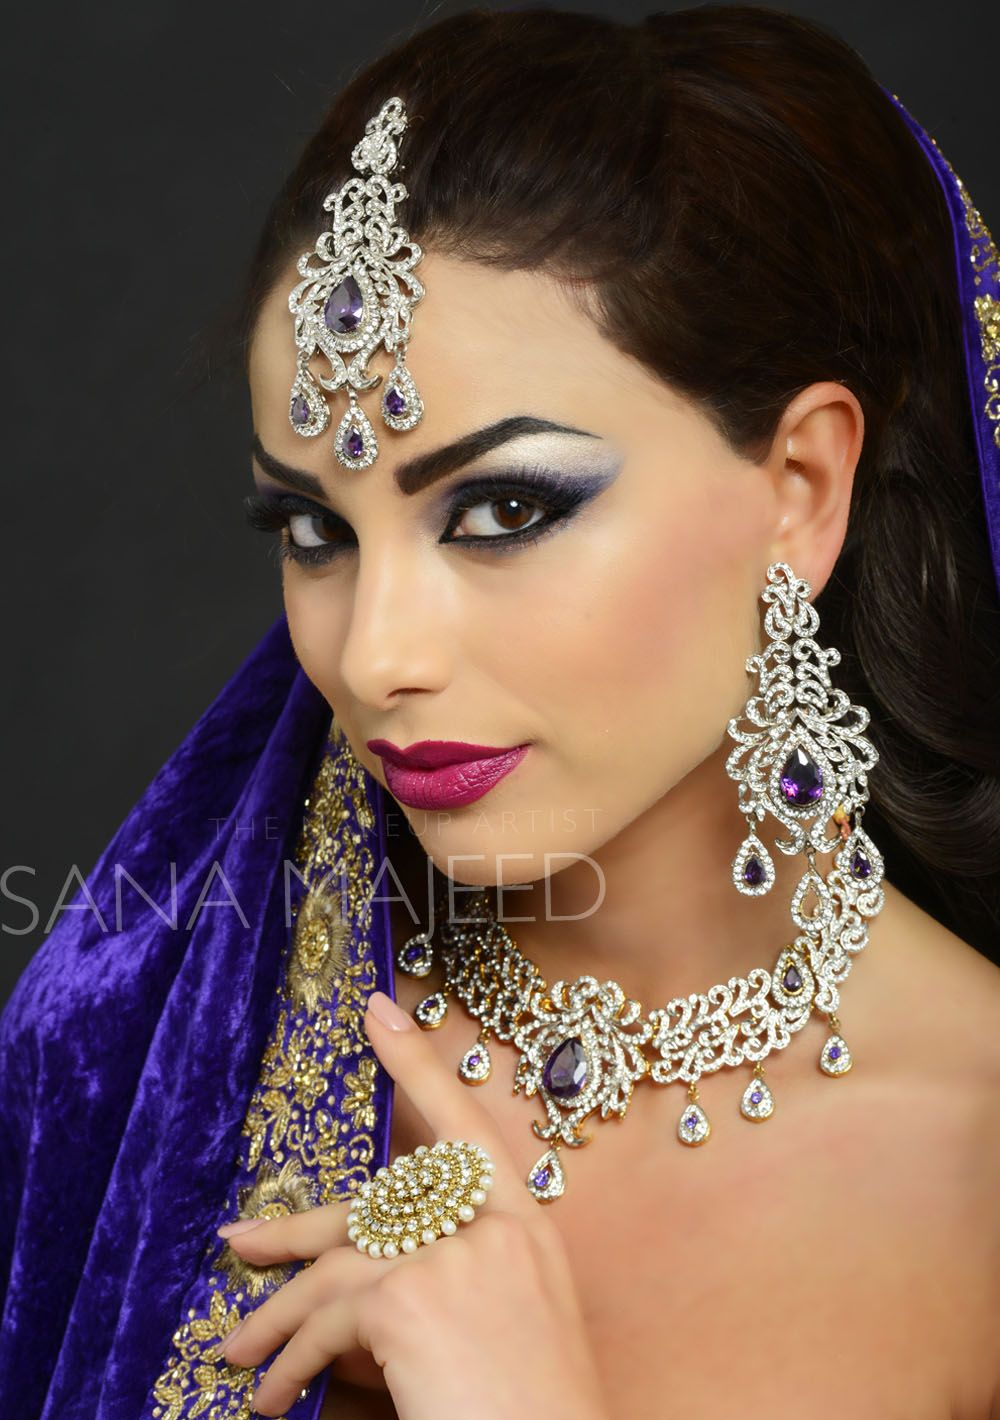 Strong eye makeup, bold lips, perfect for a wedding, Asian